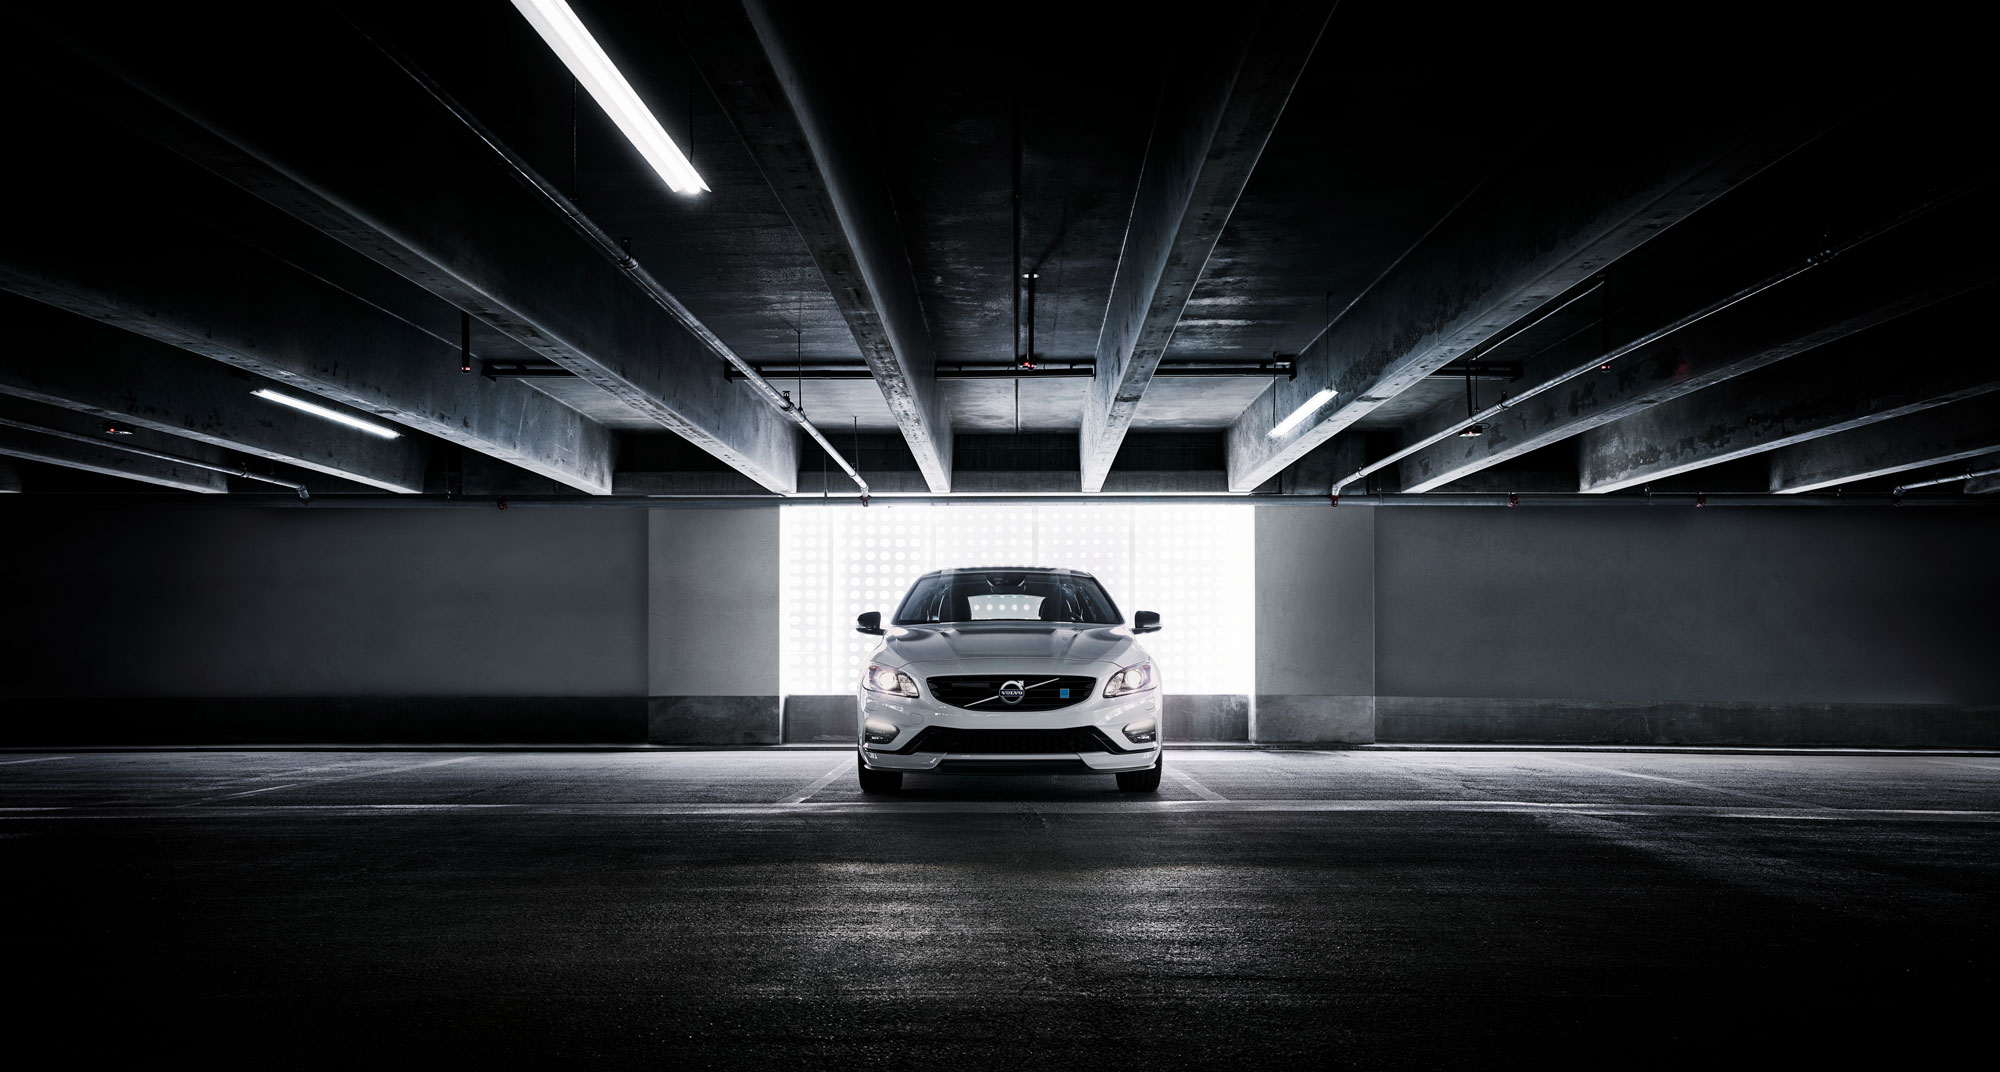 White Volvo parked in a parking garage. Parking in front of a widow opening